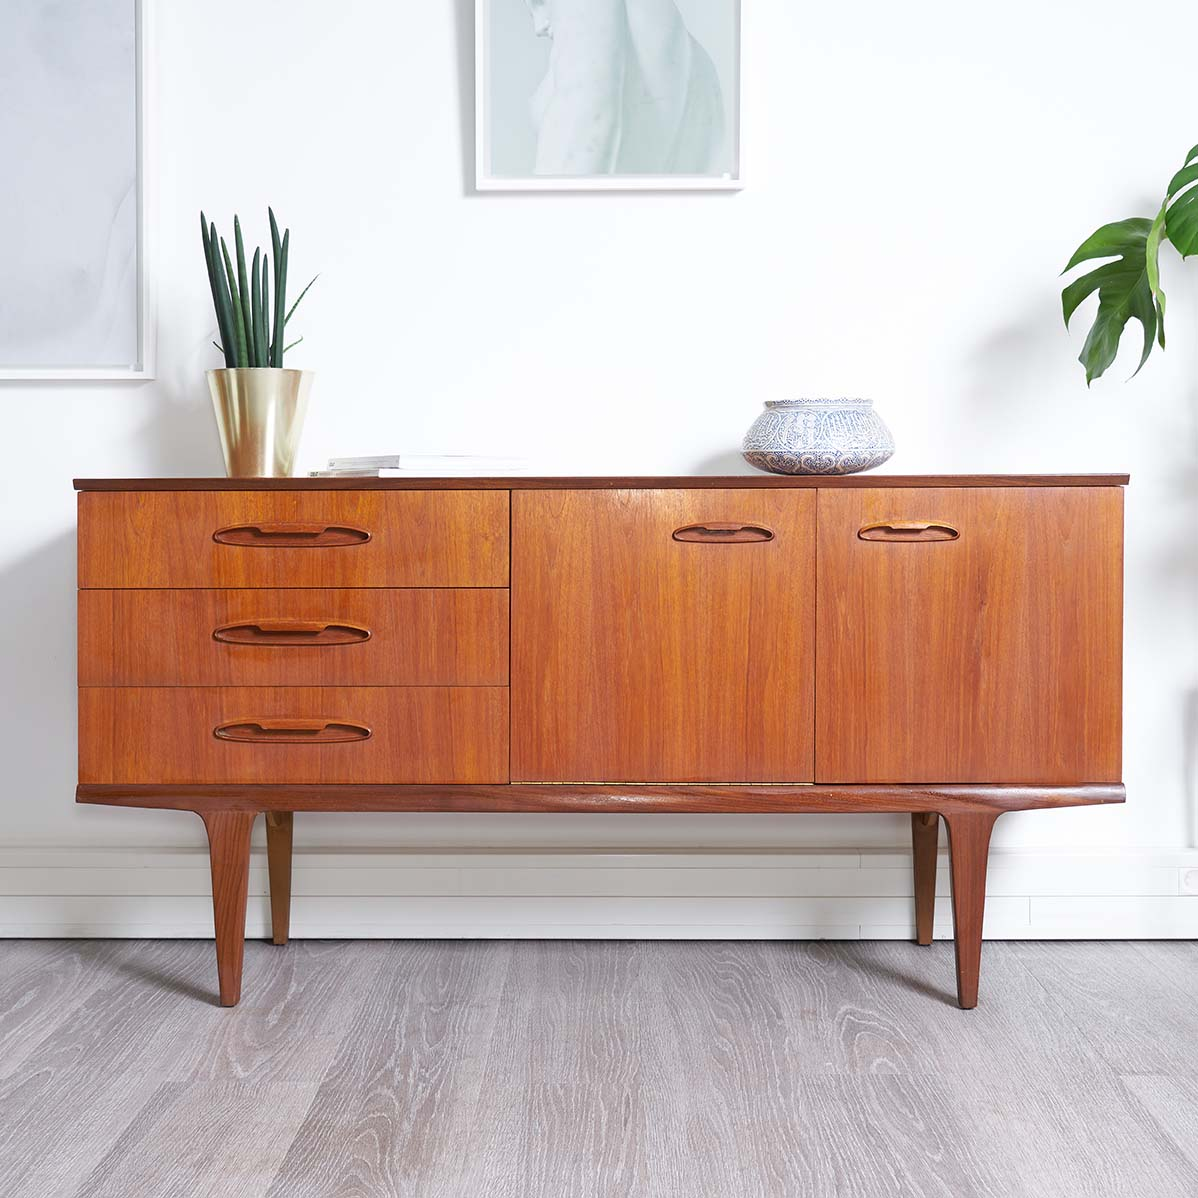 enfilade en teck 1960 style scandinave vendue room 30. Black Bedroom Furniture Sets. Home Design Ideas